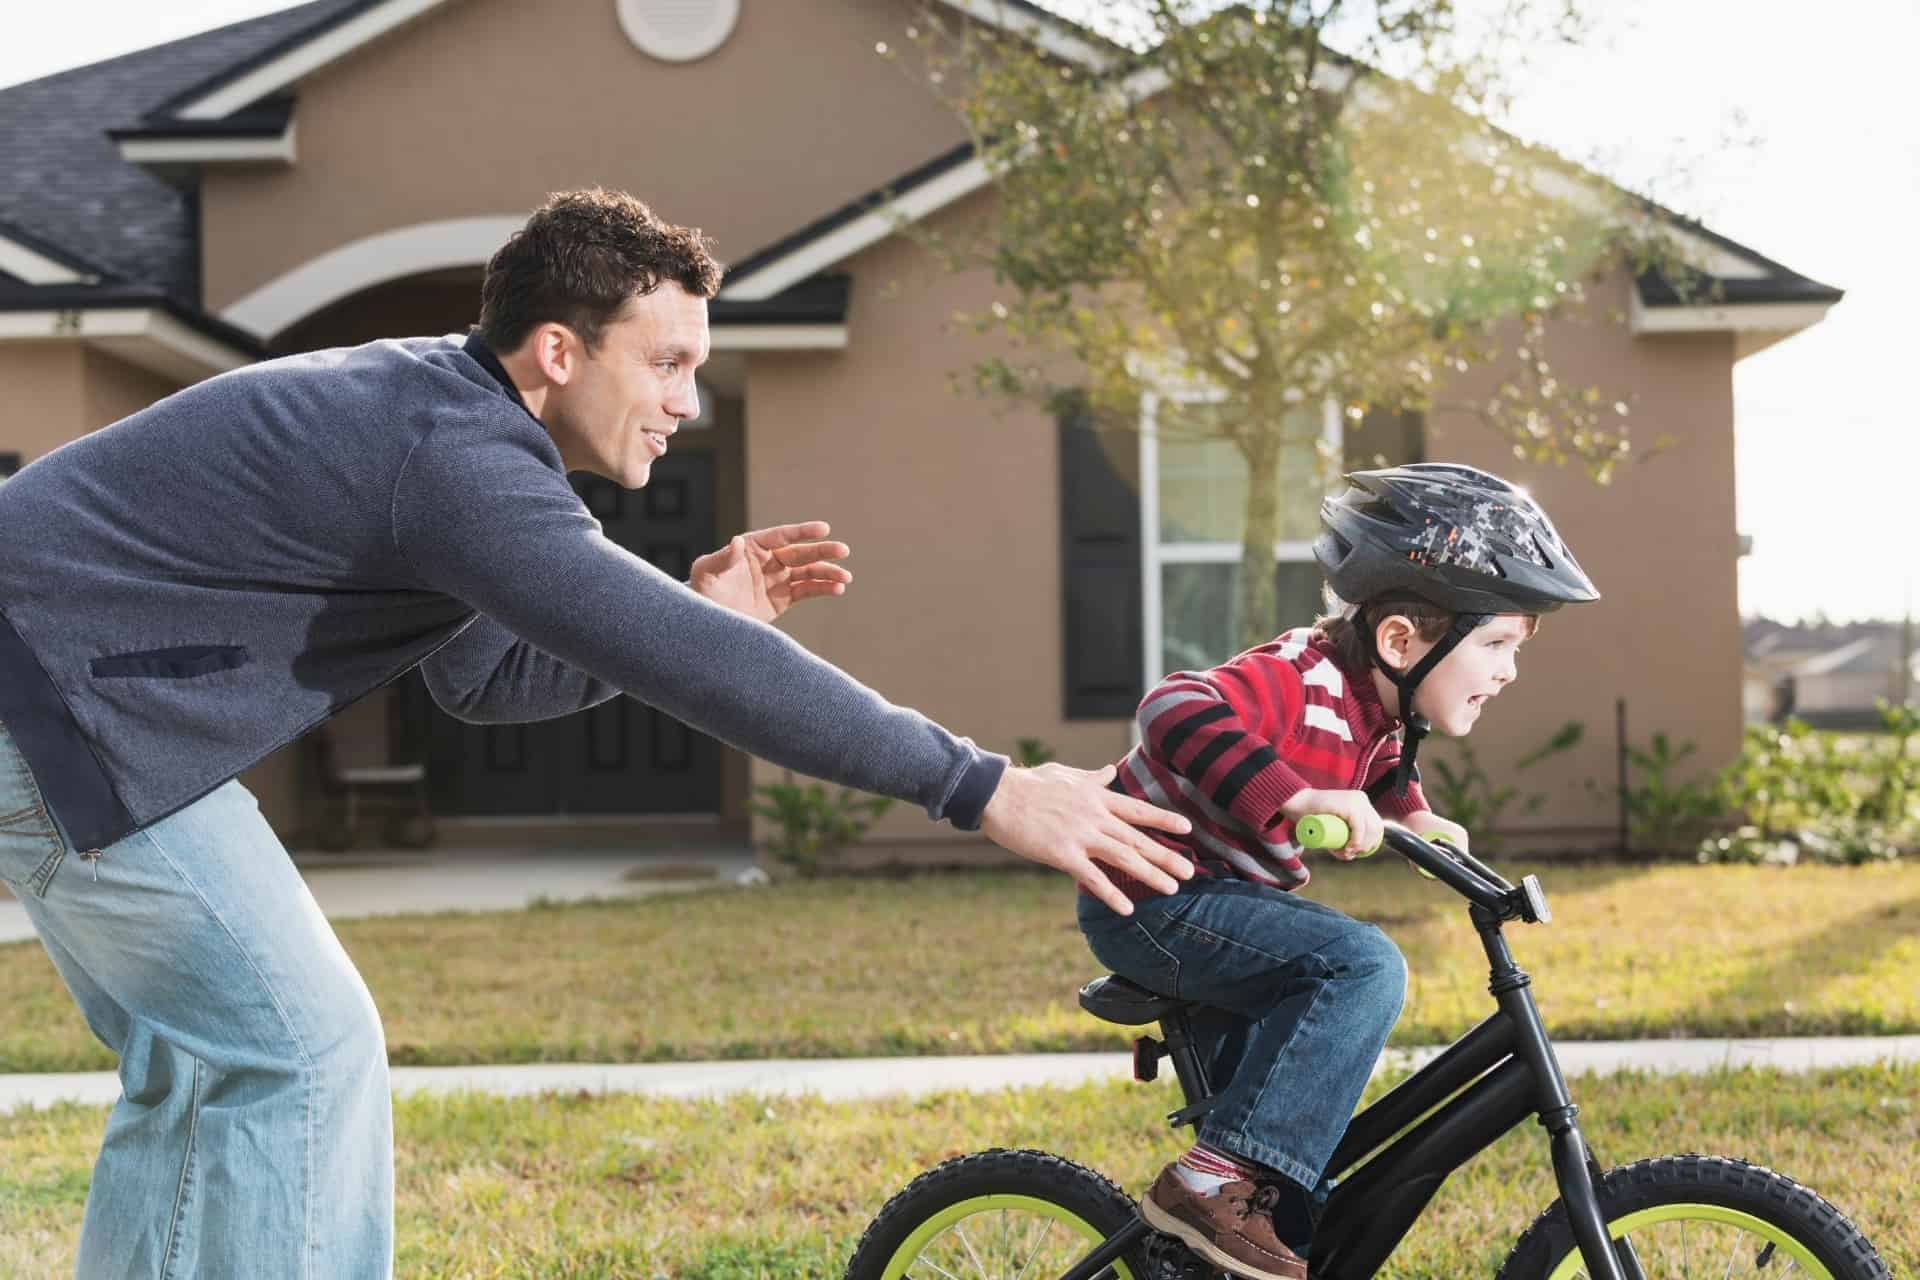 best bike for 4 year olds are lightweight but sturdy